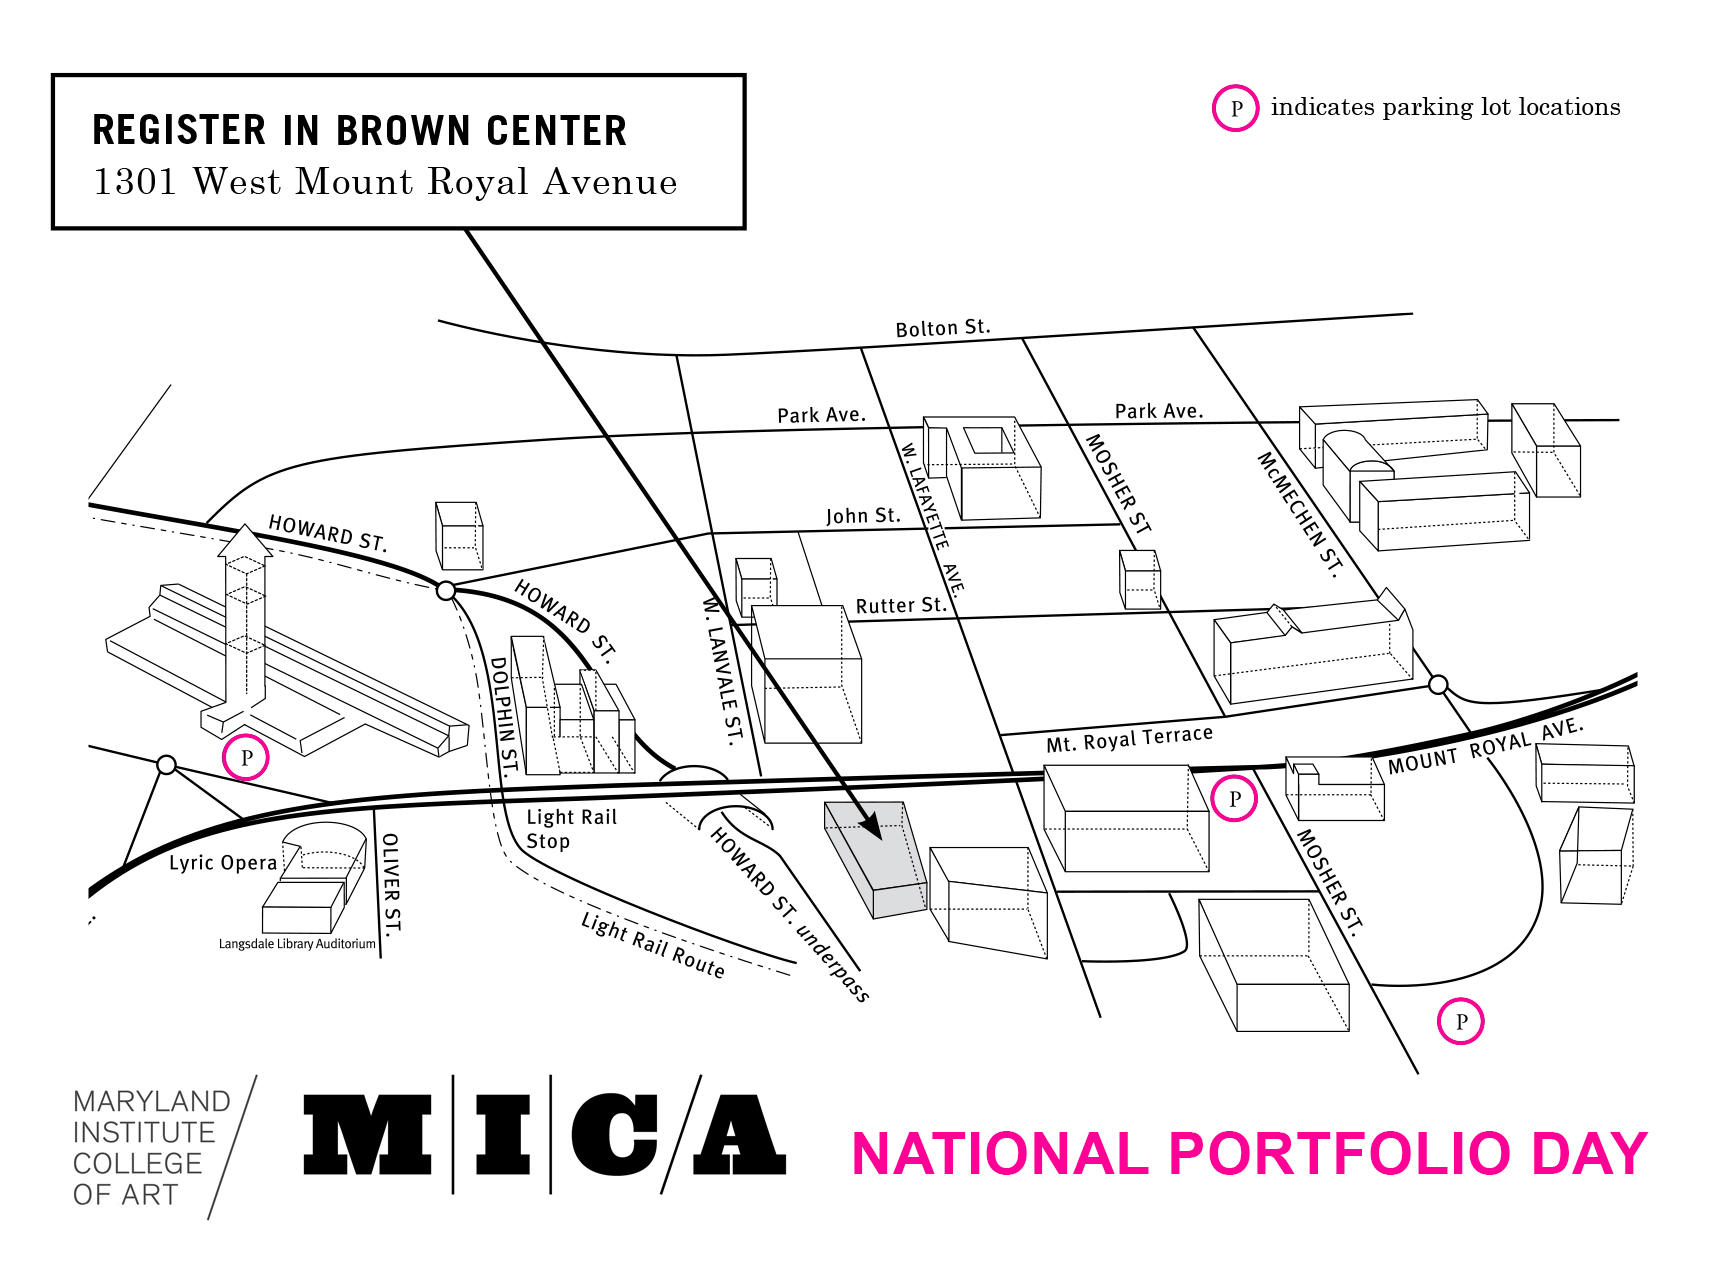 MICA Parking Map